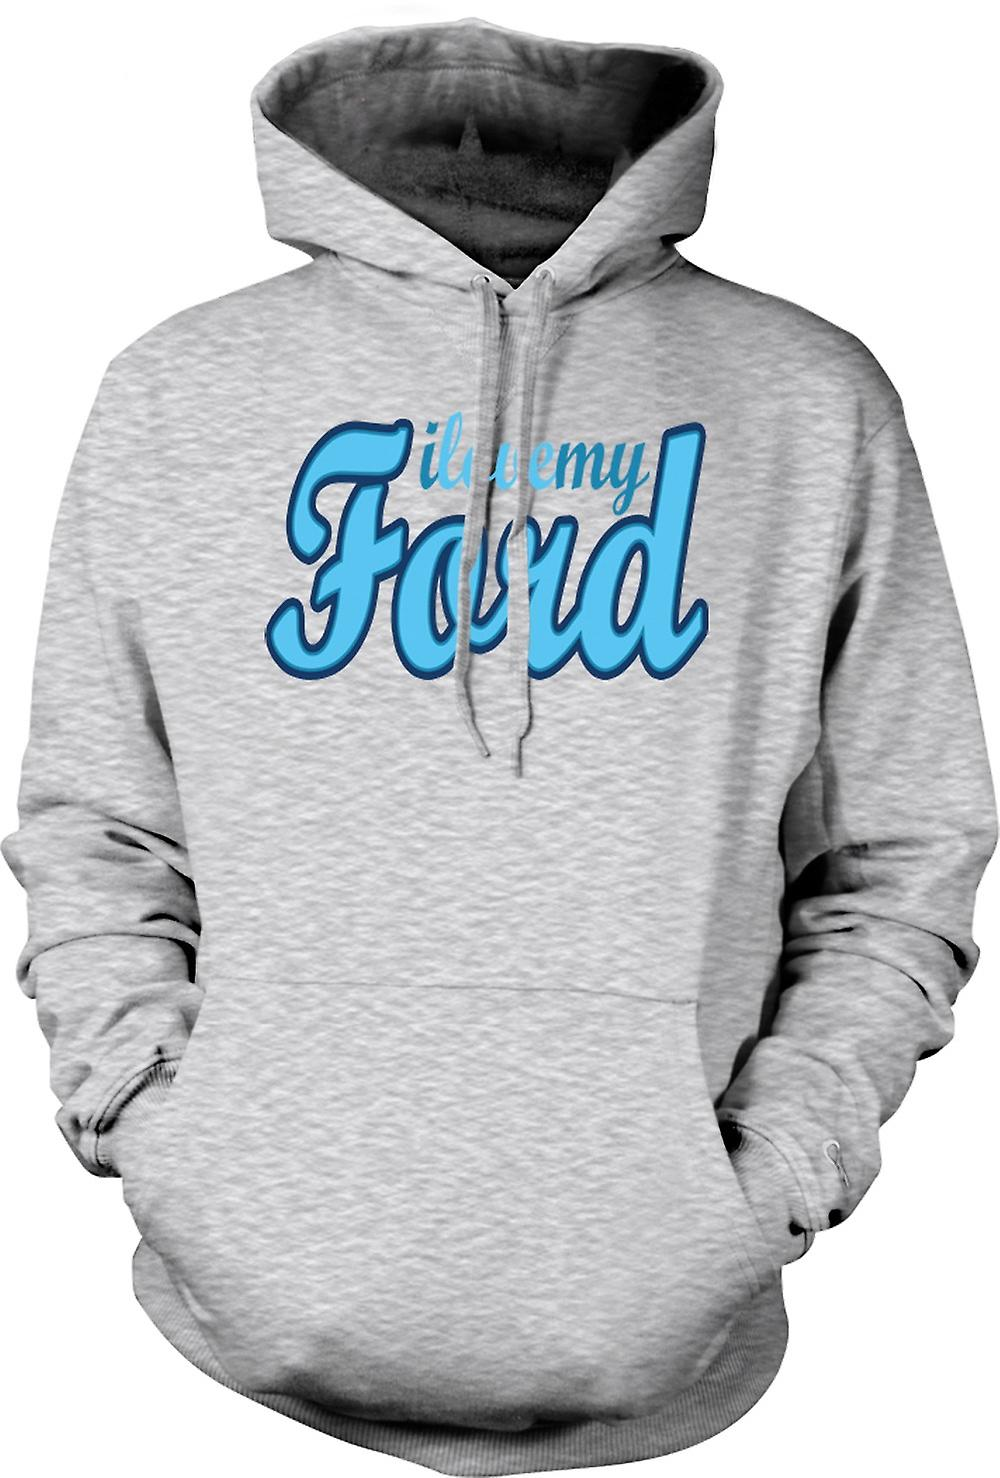 Mens Hoodie - I Love My Ford - Car Enthusiast